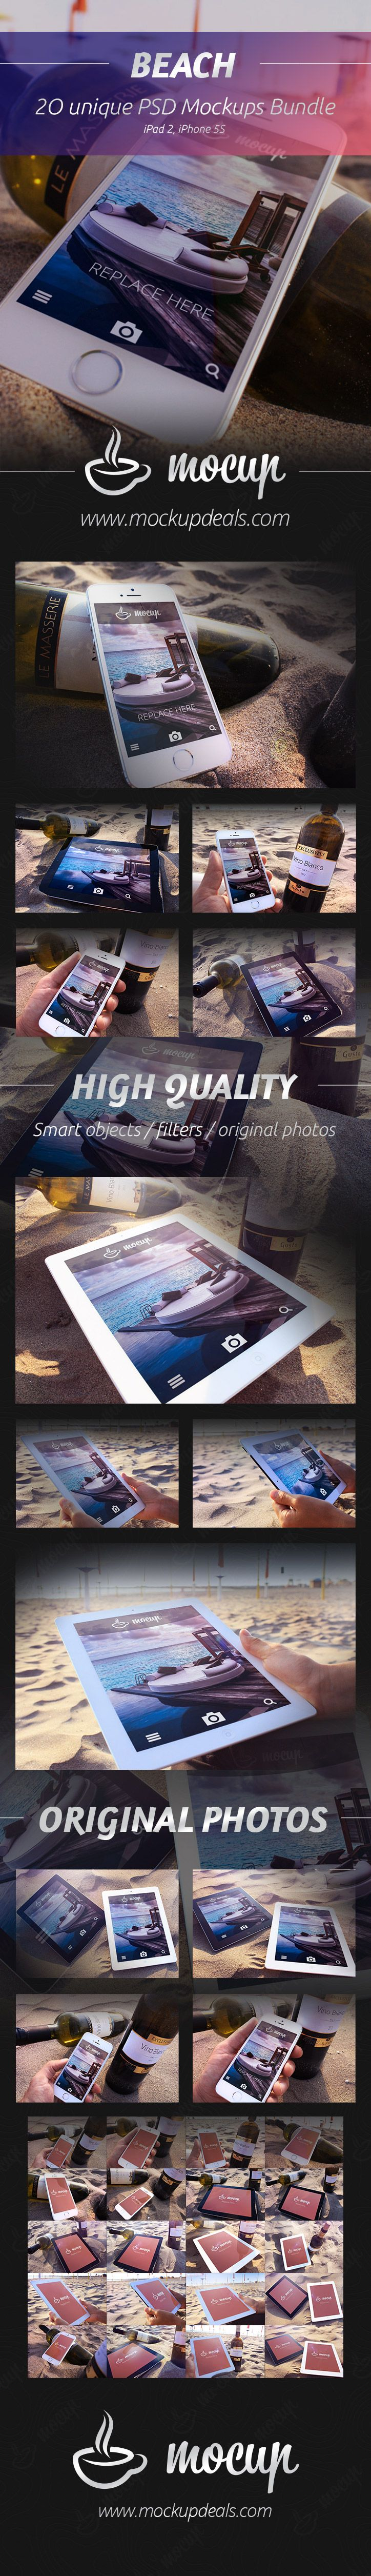 A real photo PSD iPhone 5S and iPad 2 mockups set Beach to present your website or application.